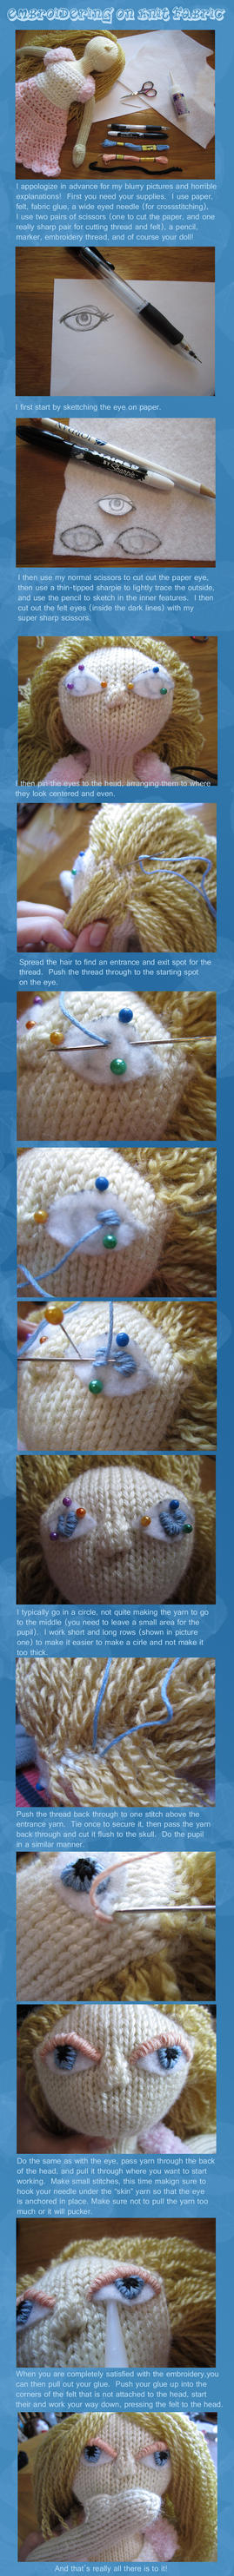 Tutorial -- Embroidering on Knit Fabric (eyes) by ashesonfire